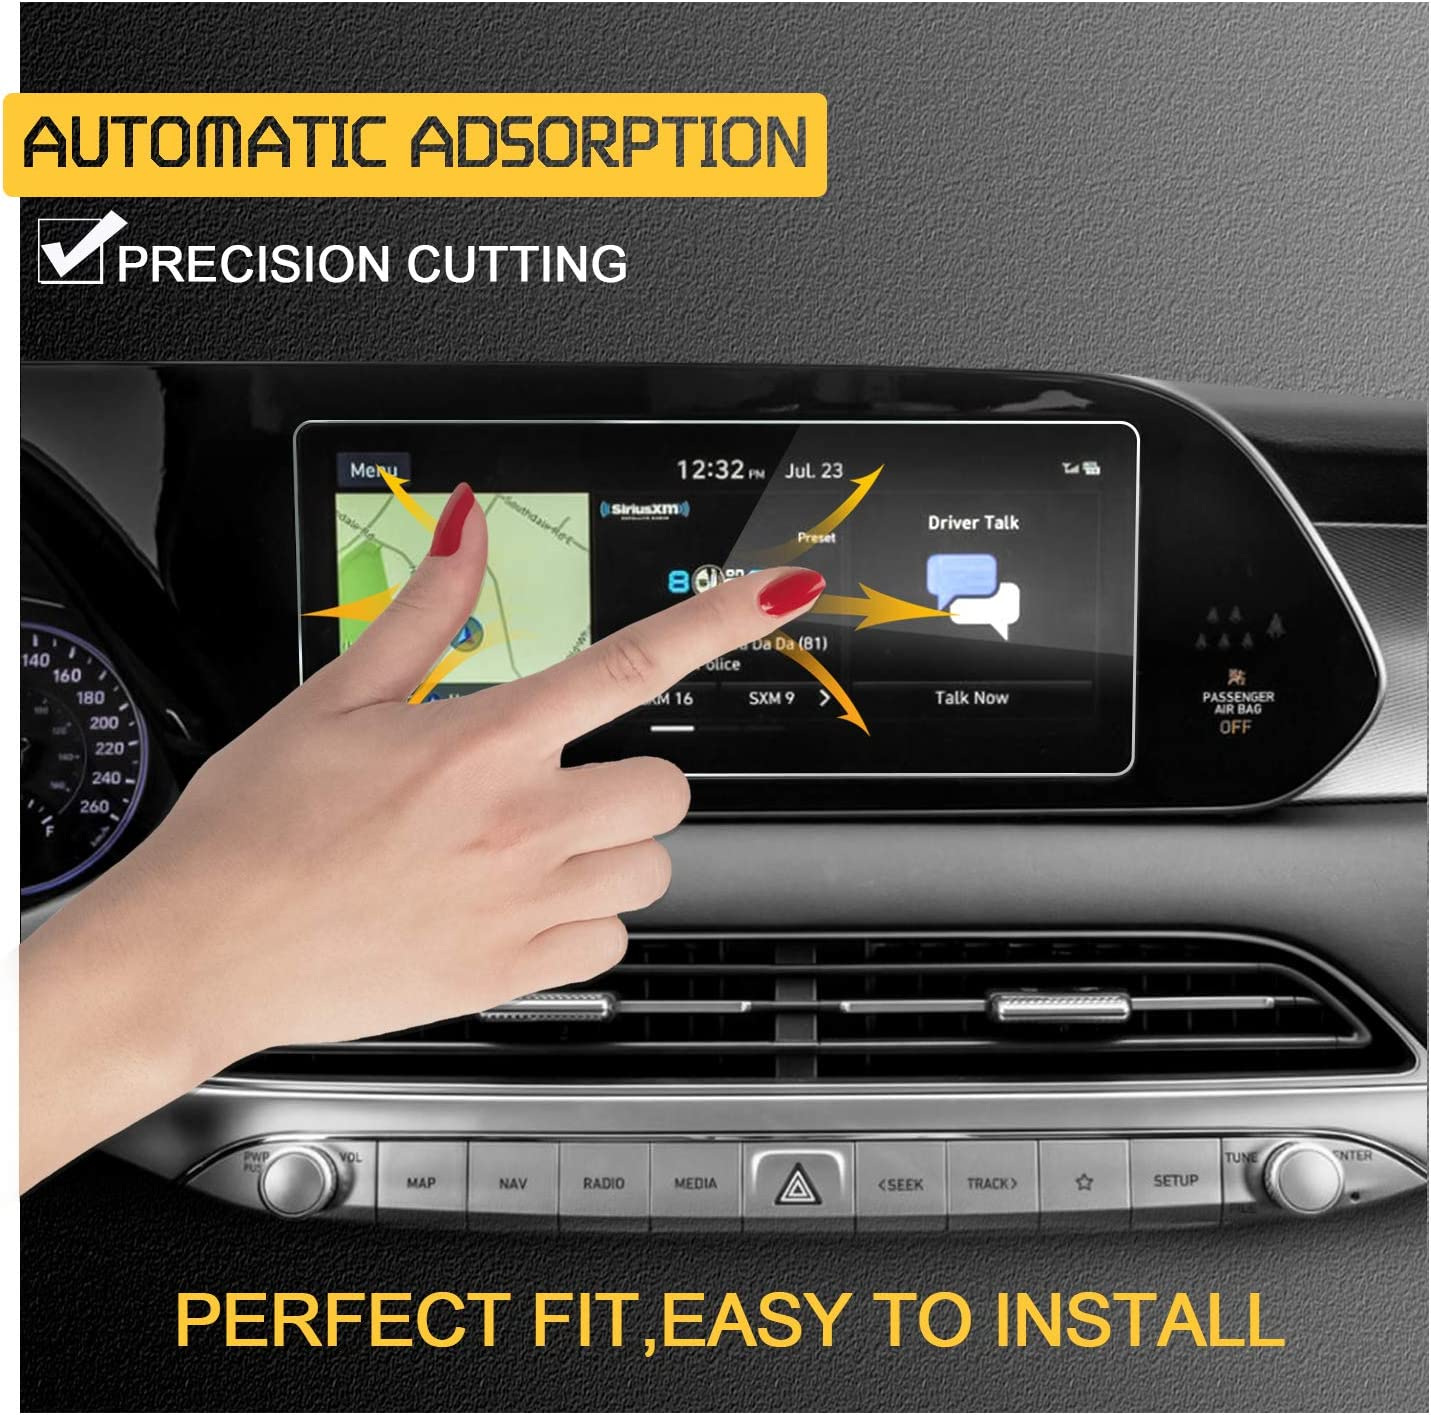 RUIYA Center Touch Control Screen Protector for 2020 Palisade Sonata DN8 10.25In,Car Navigation Tempered Glass 9H Anti-Scratch and Shock Resistant Touch Screen Protector Telluride 2020